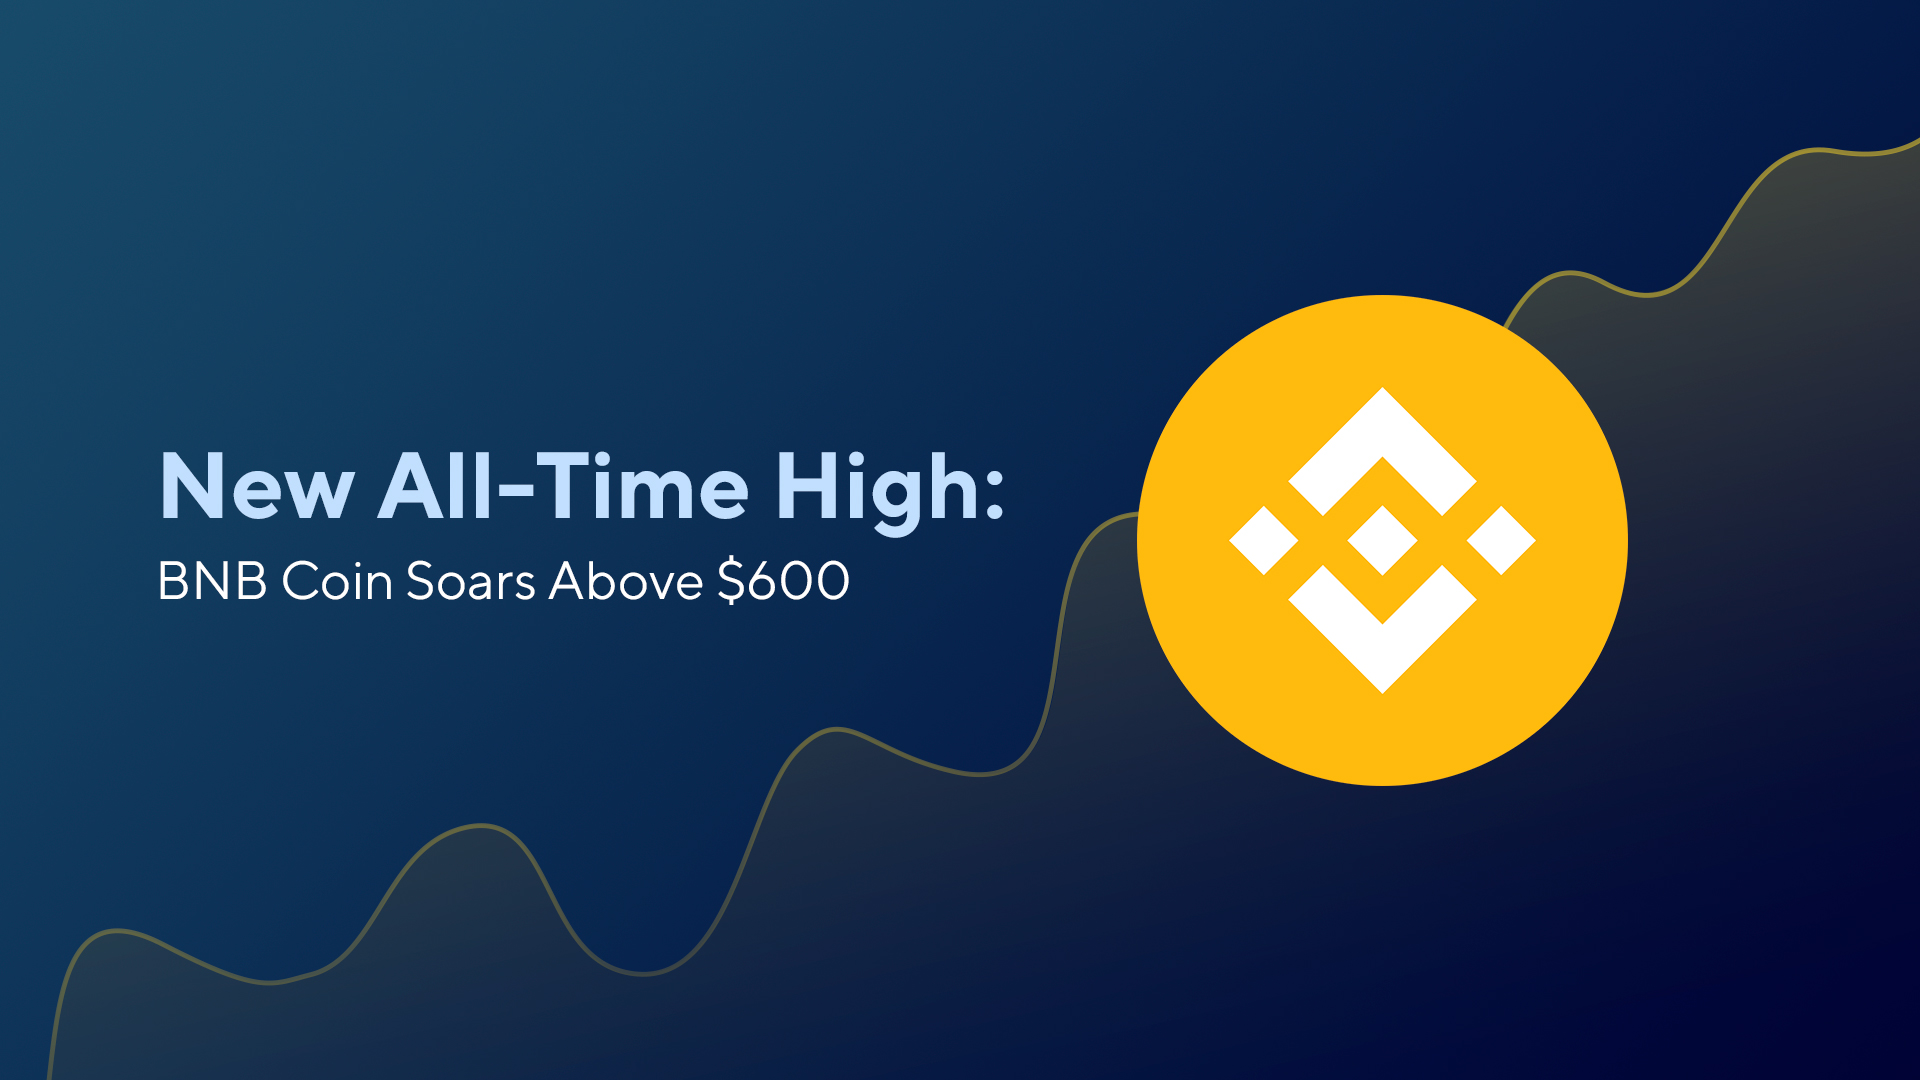 New All-Time High: BNB Coin Soars Above $600